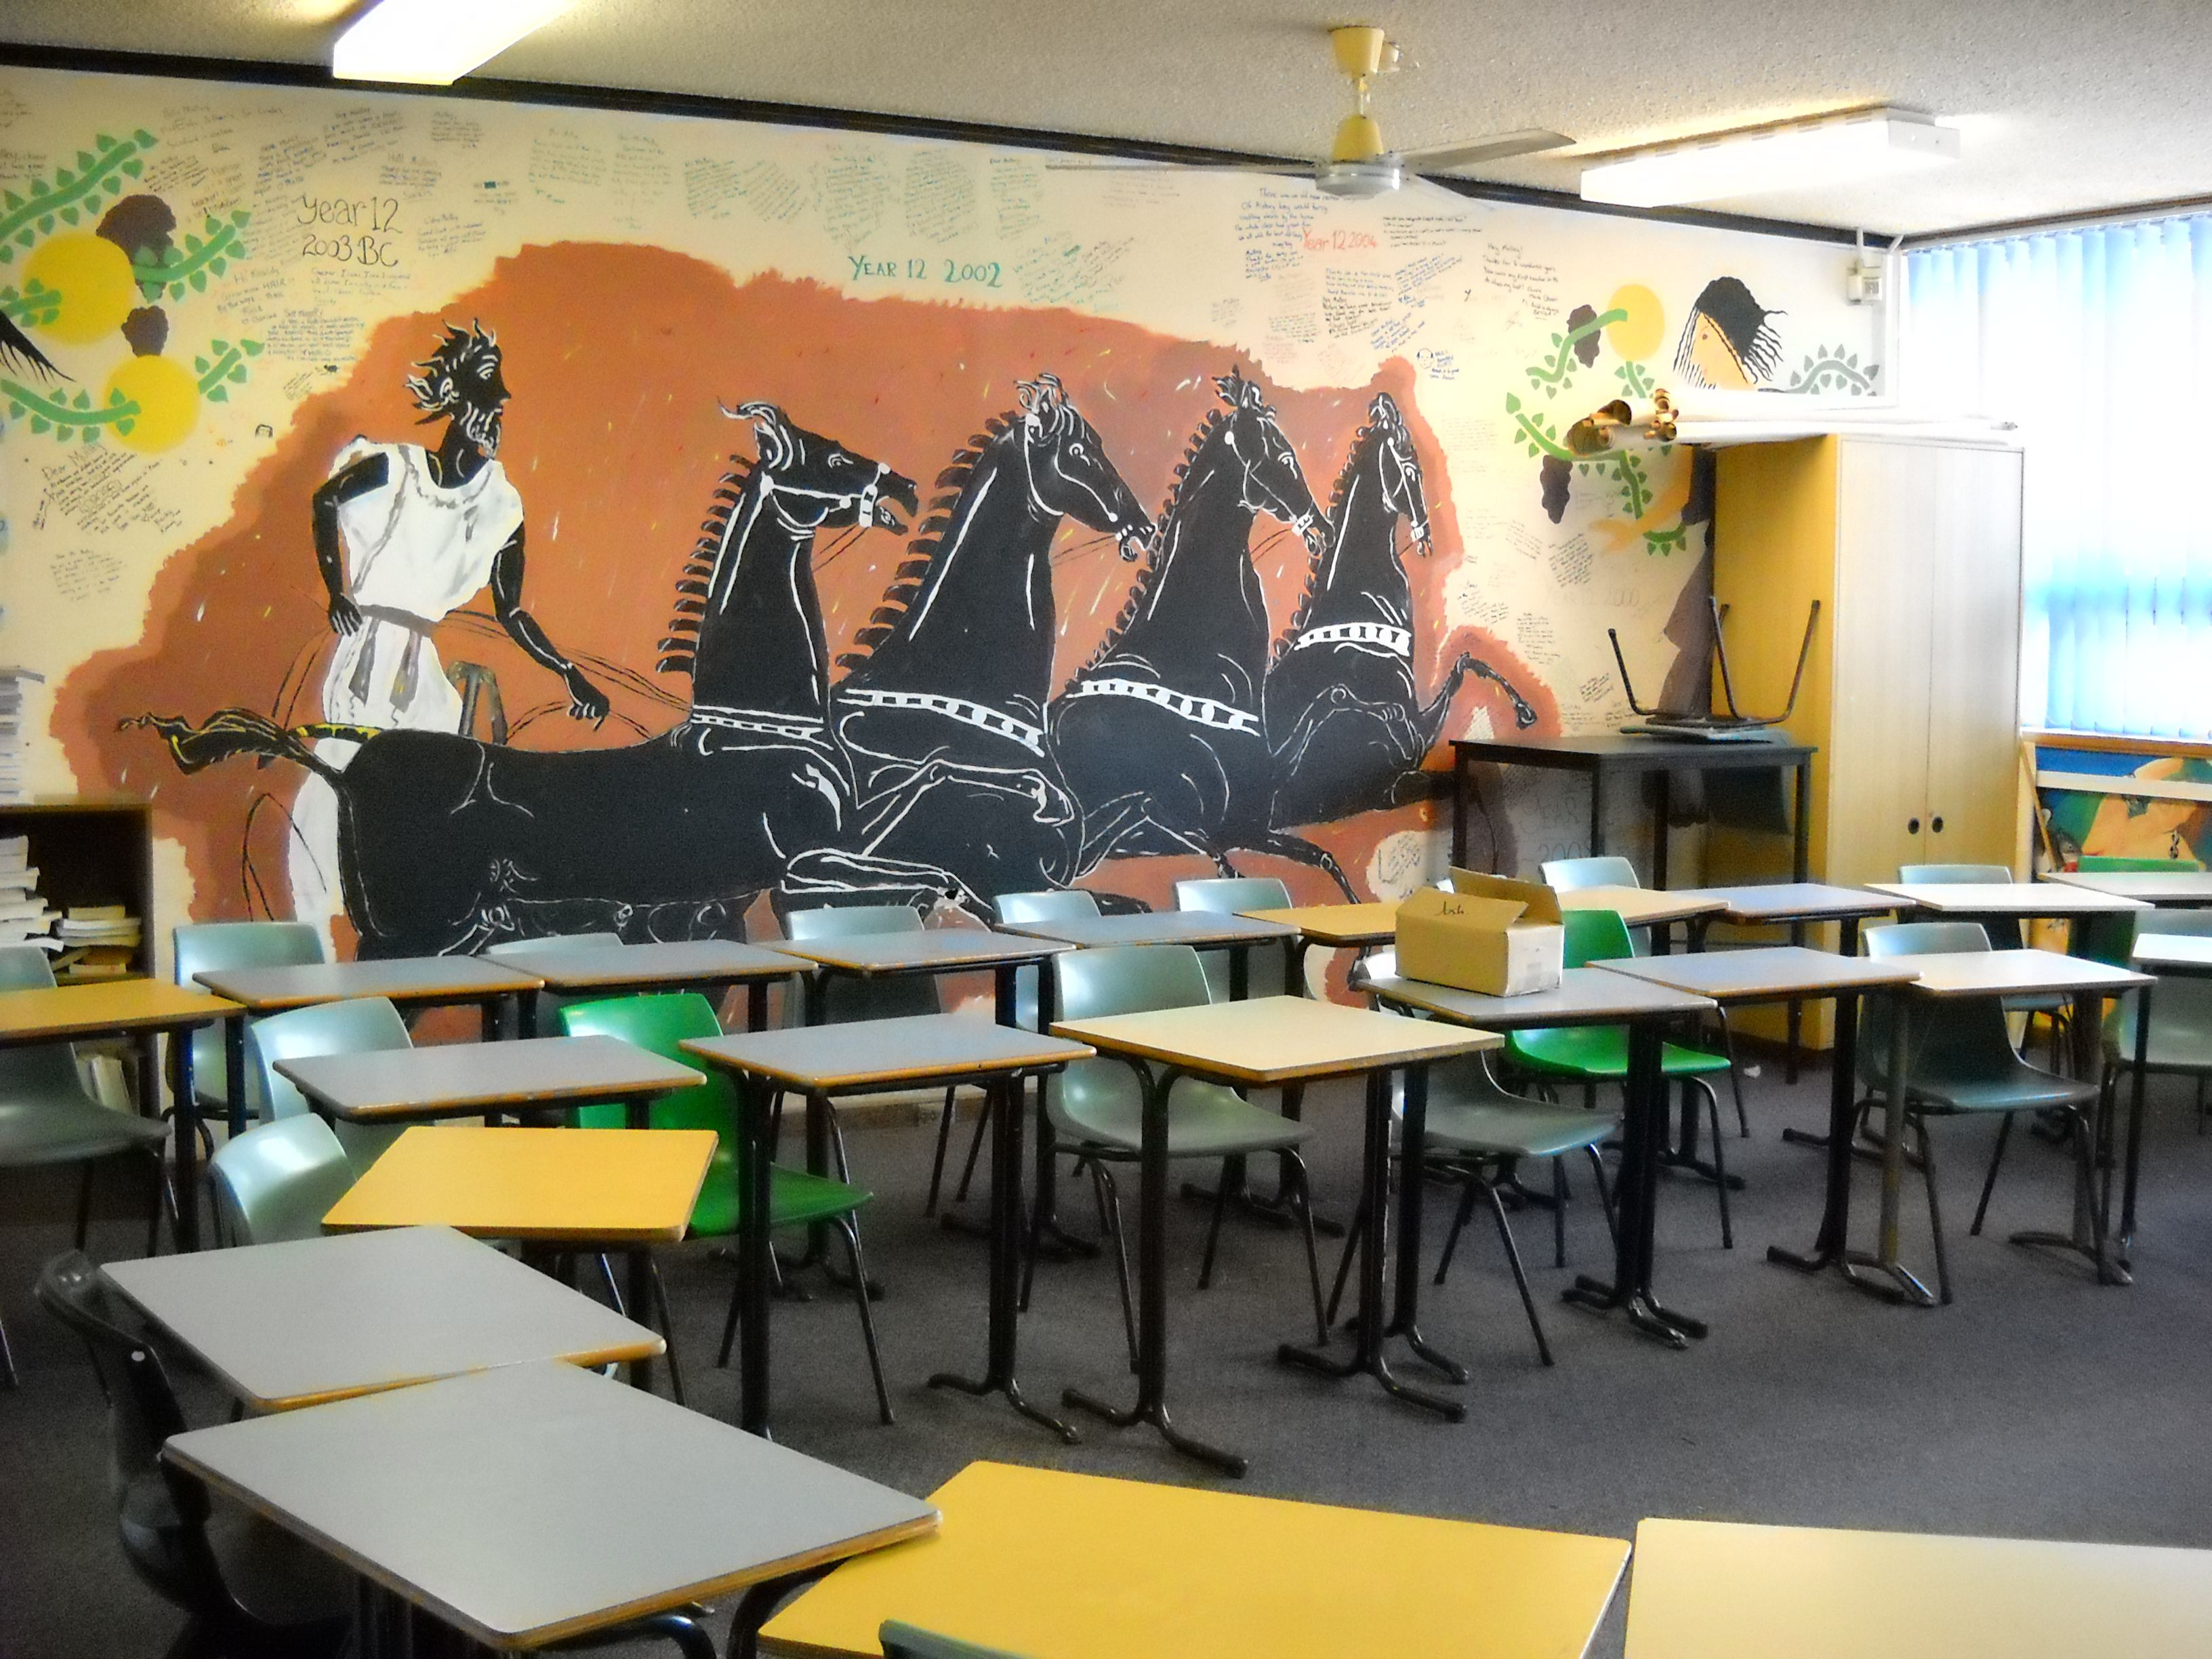 History Classroom Decorations : High school history classroom decorations pixshark